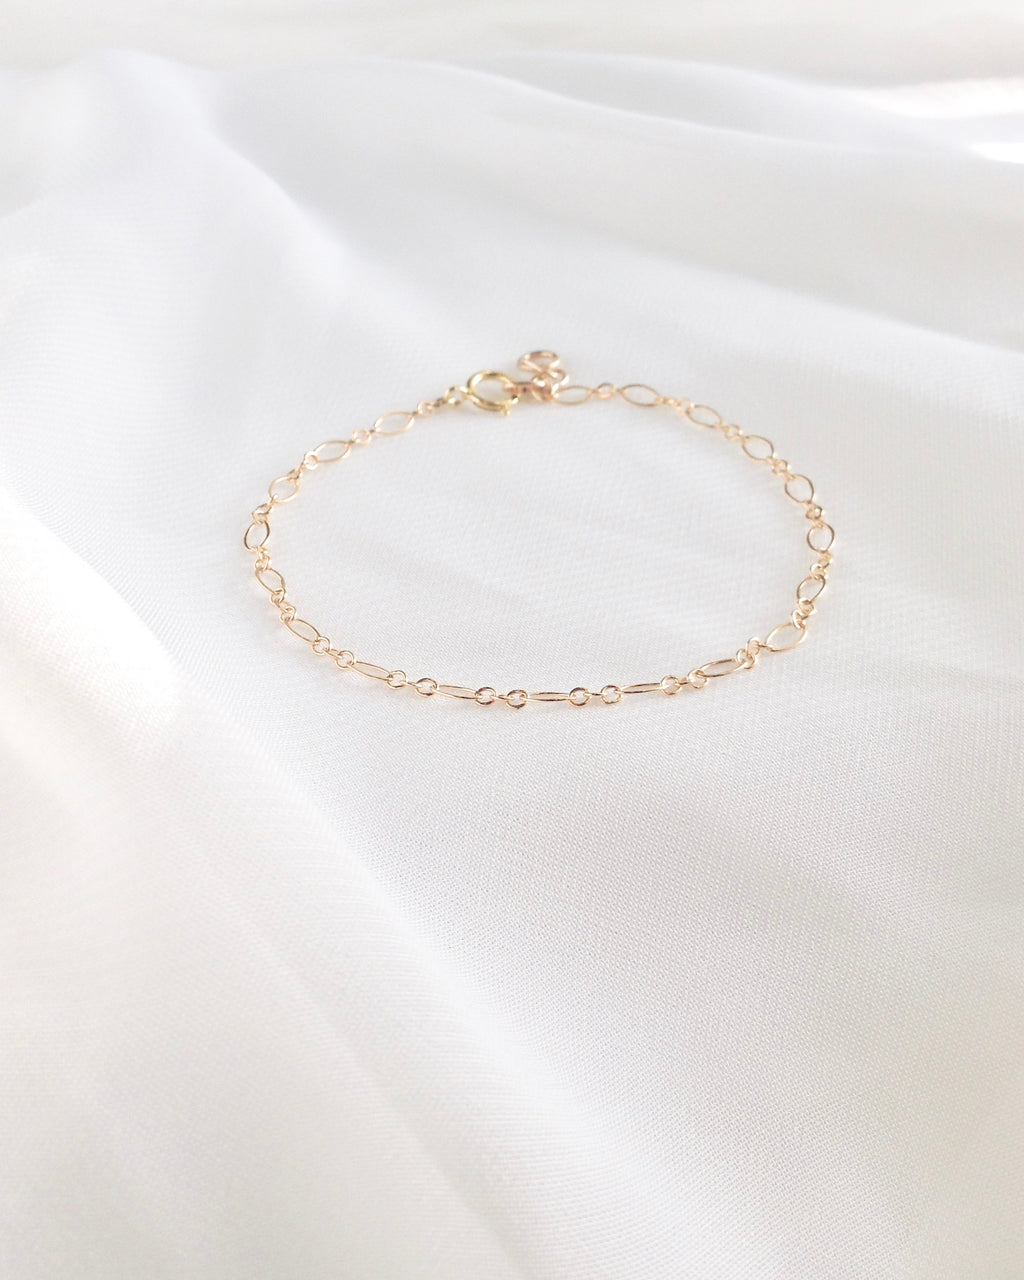 Oval Link Dainty Chain Bracelet in Gold Filled or Sterling Silver | IB Jewelry